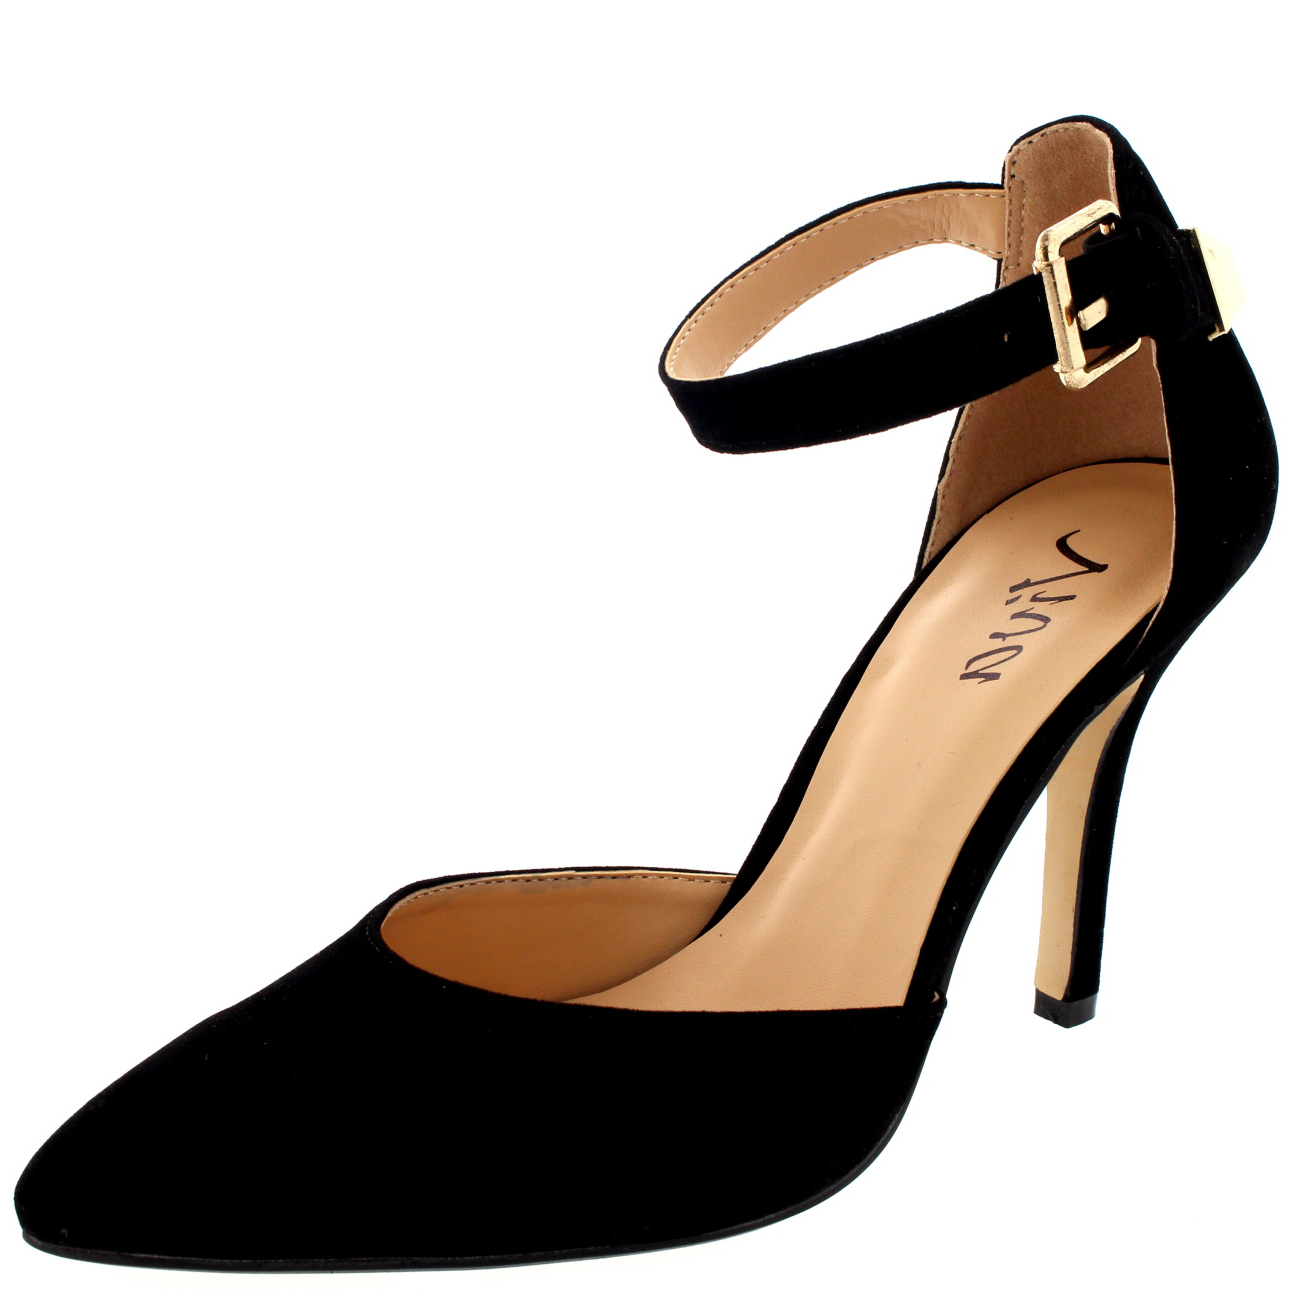 Ankle Strap Shoes Heels